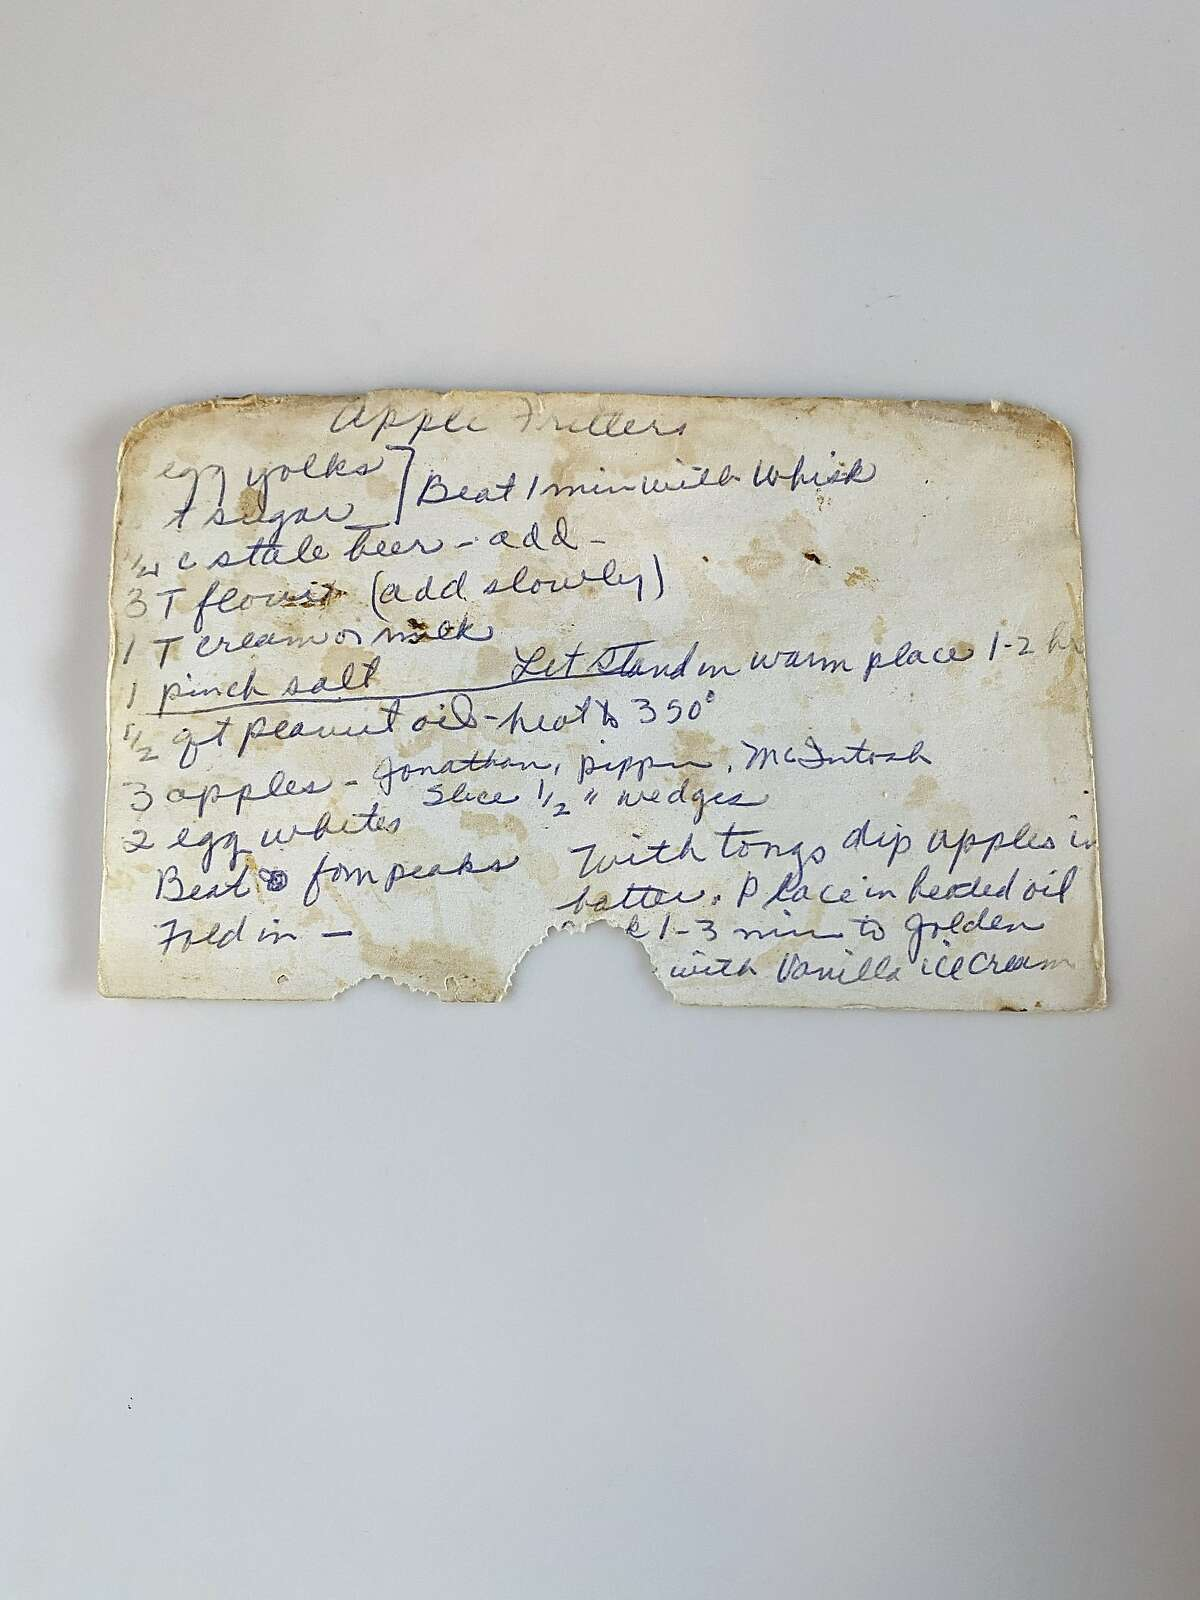 Margaret Mason's box of recipes, found at a flea market, inspired� The Kitchen Committee project.